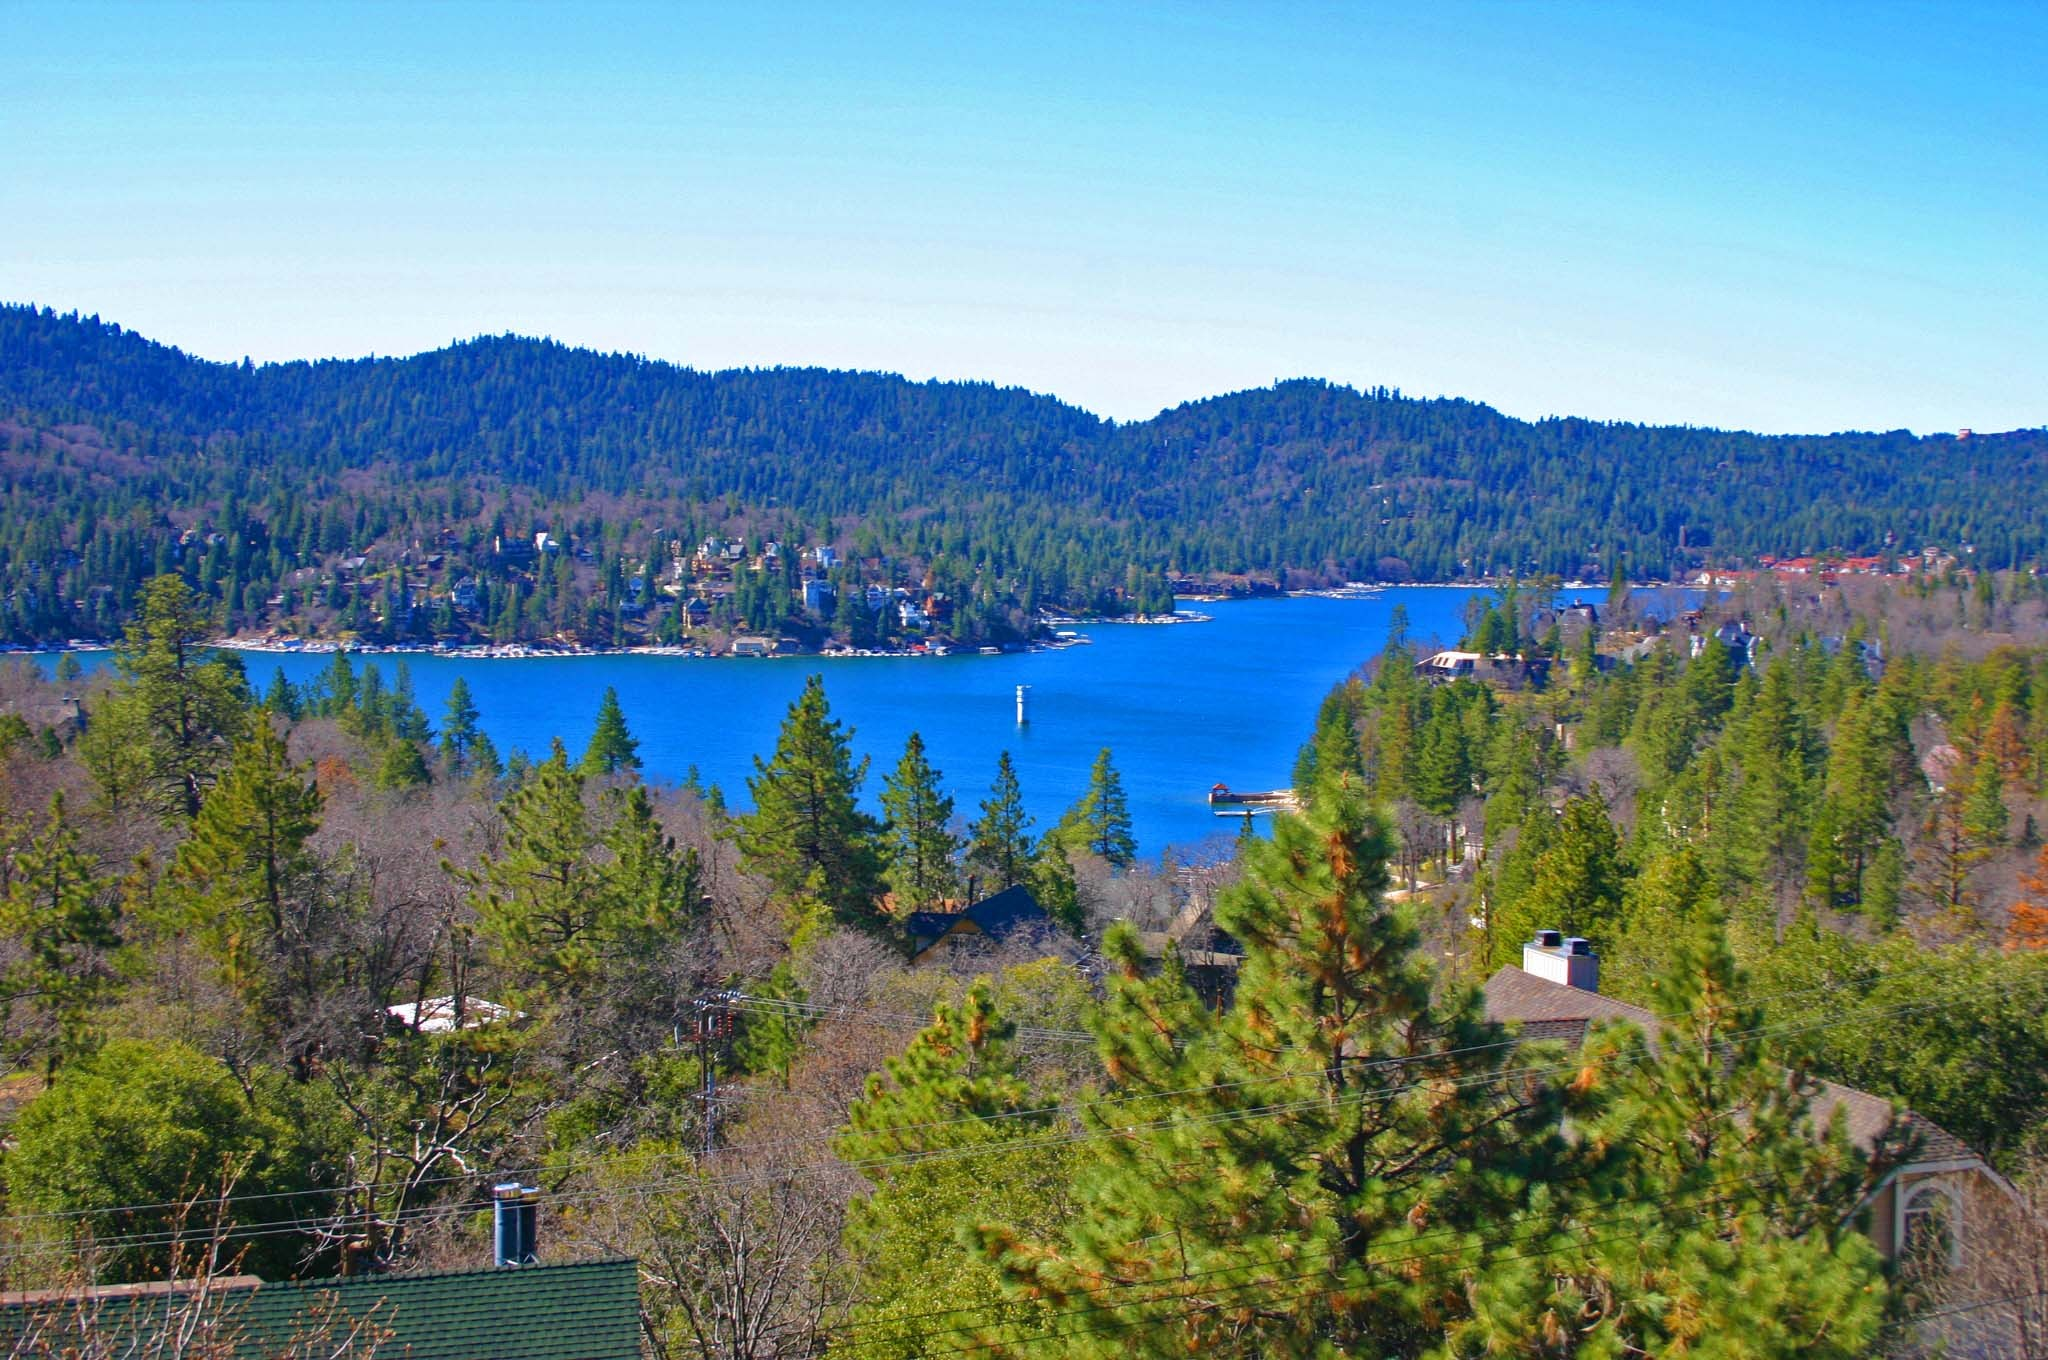 Lakeview Home with Level Entry - Lake Arrowhead, CA